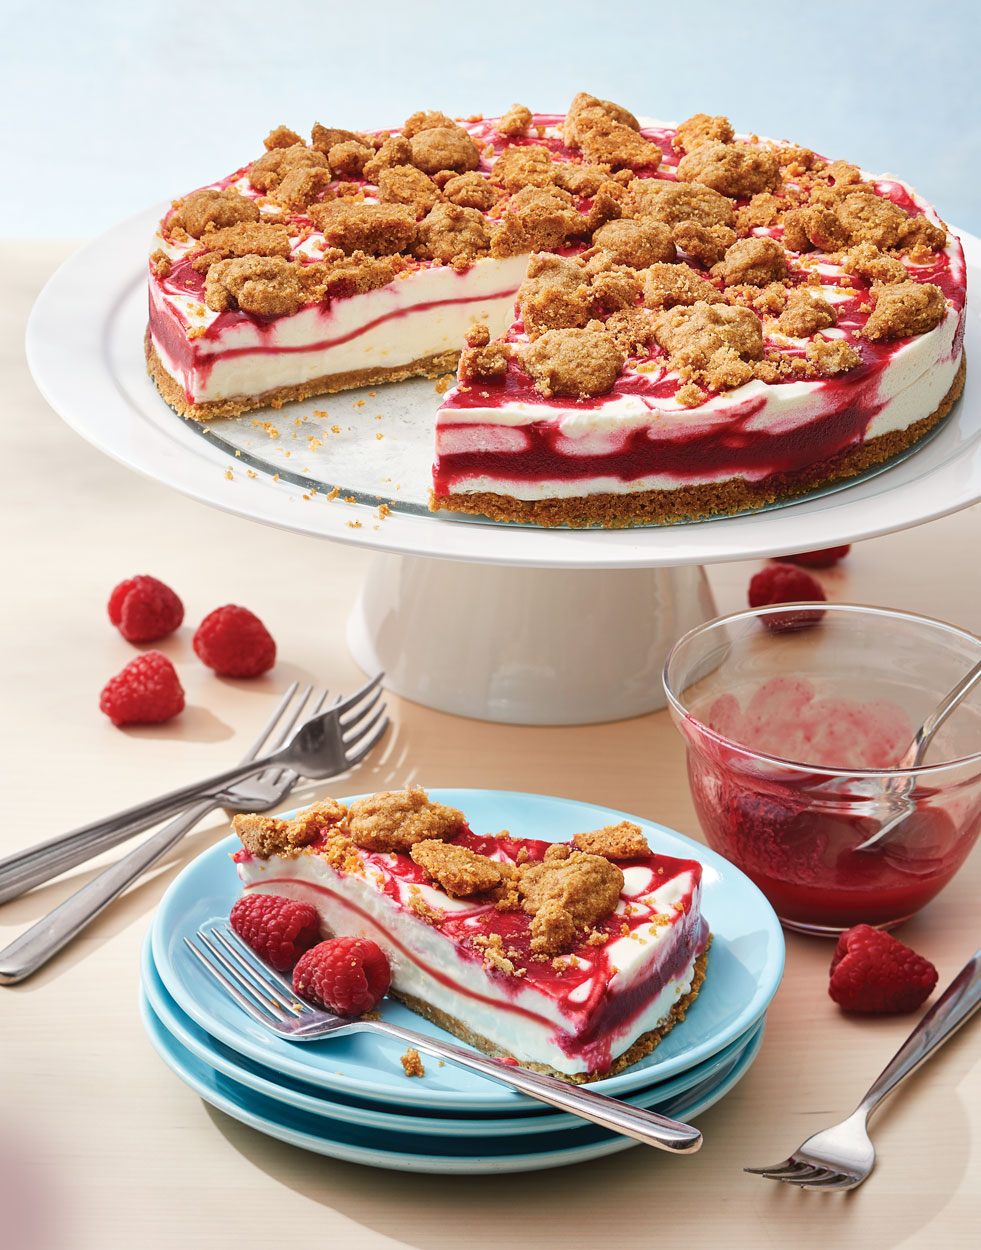 Raspberry Ripple Ice Cream Pie with Toasted Almond Crumble